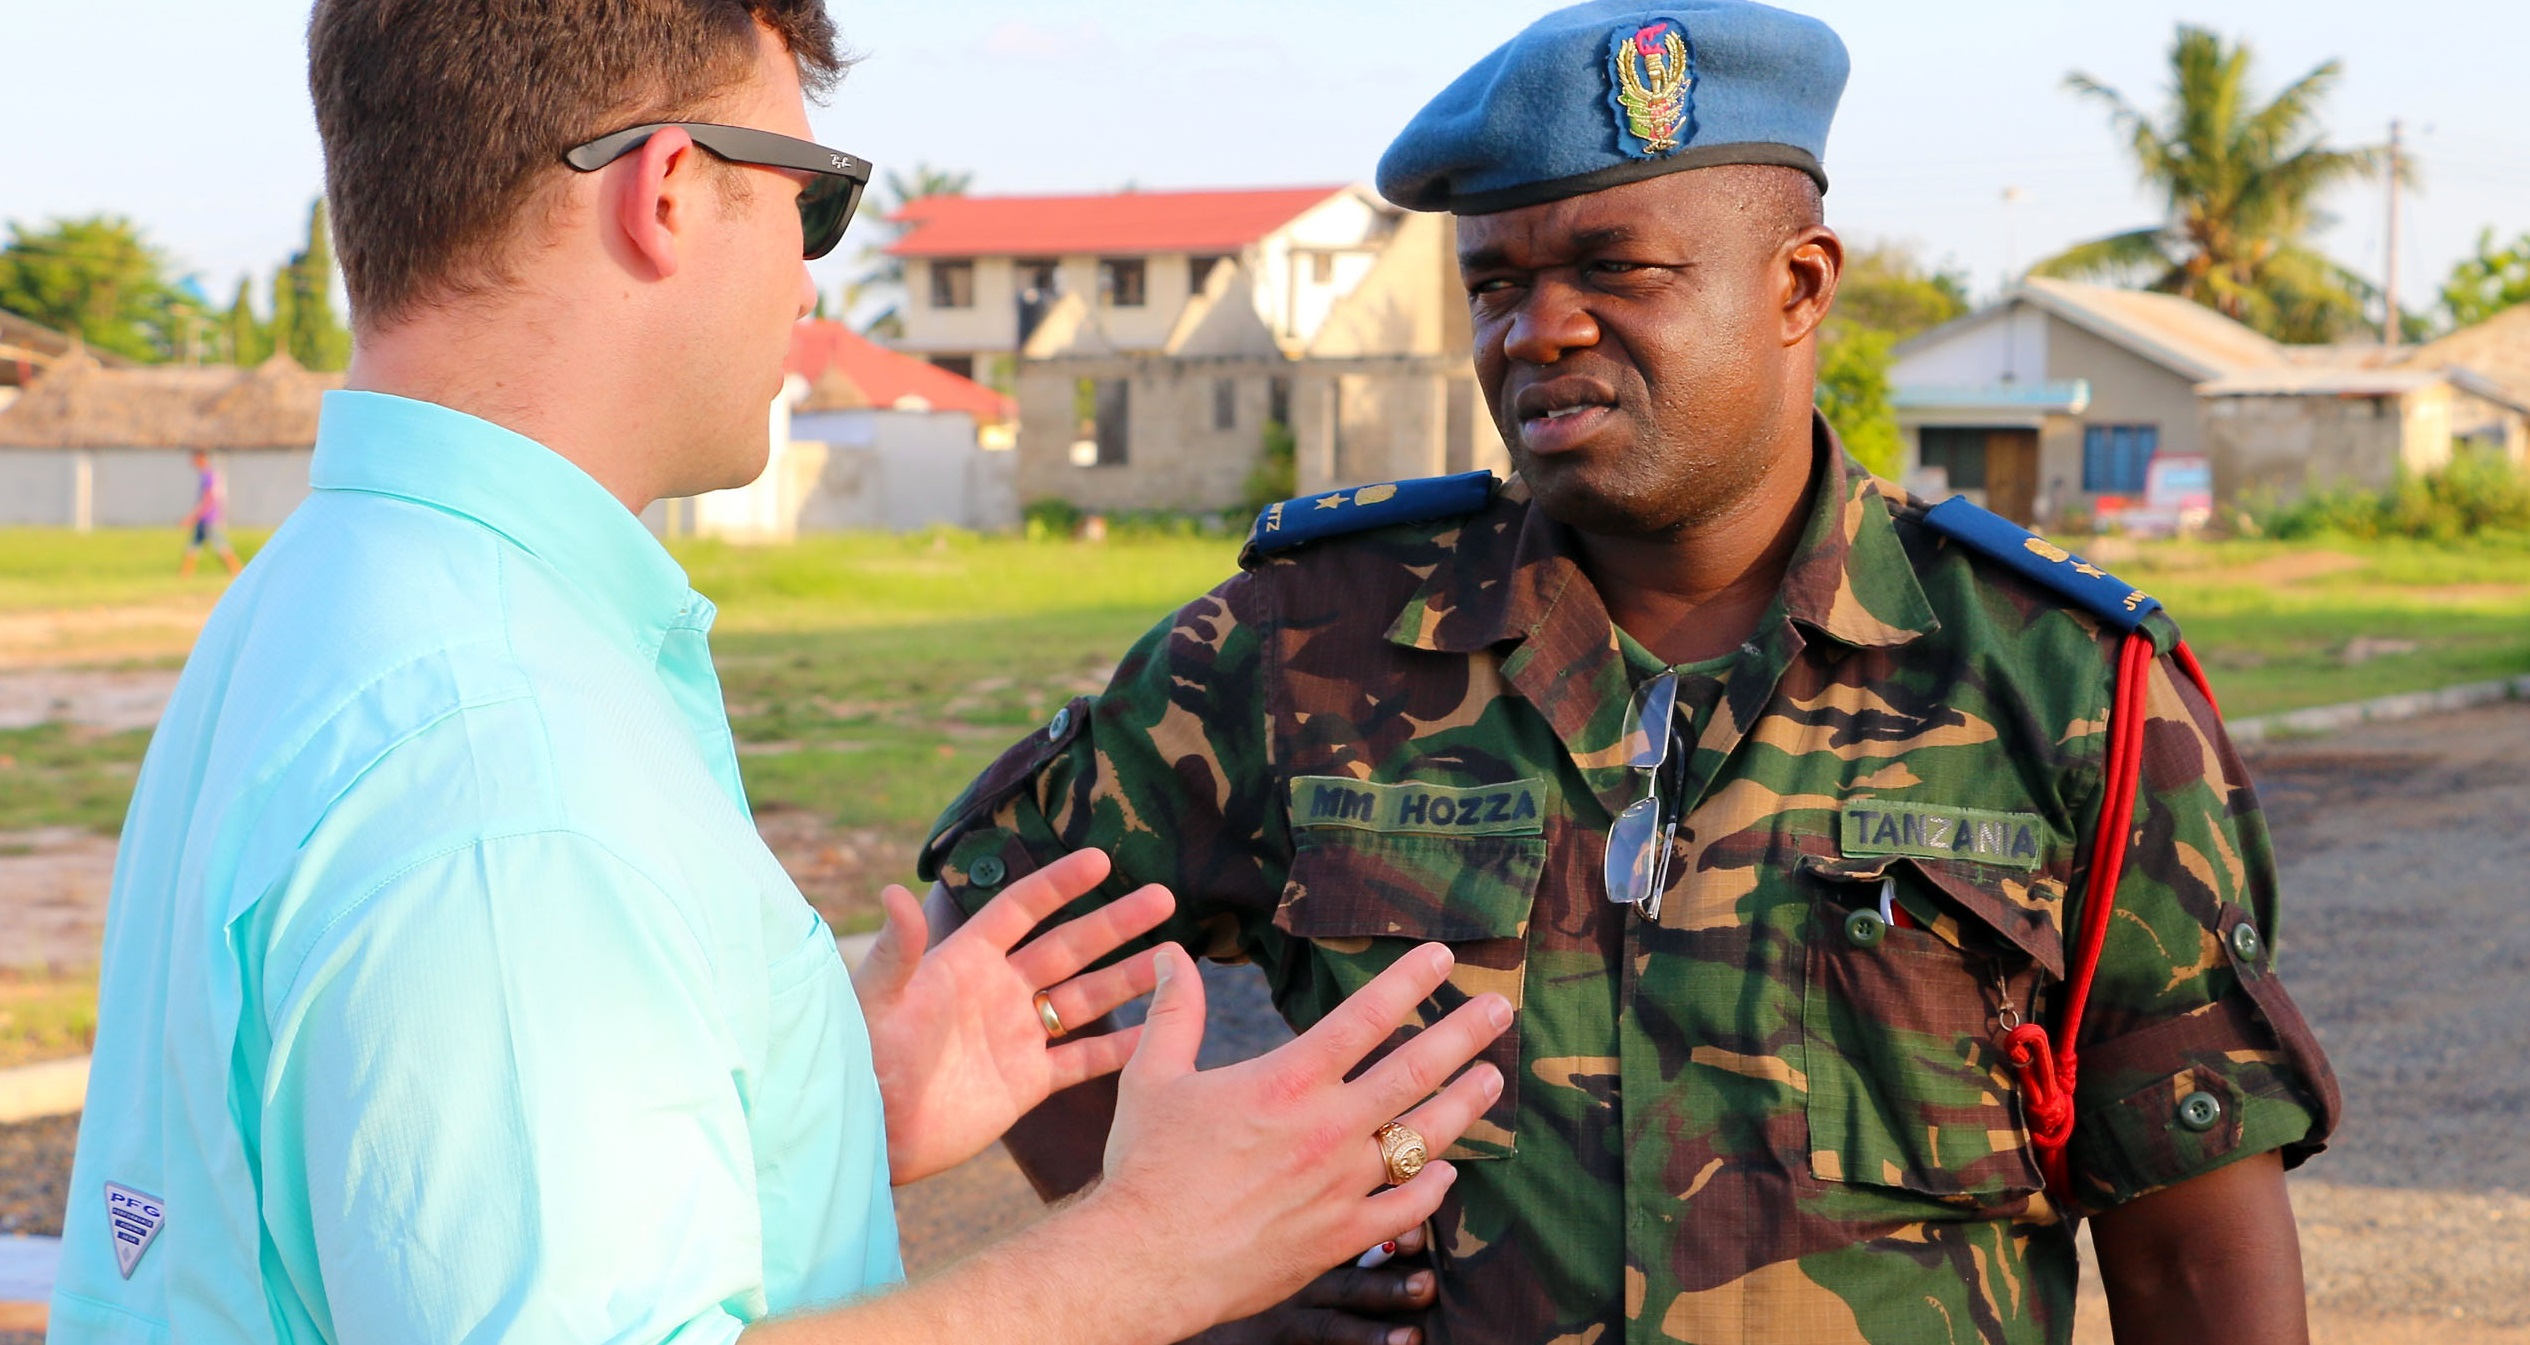 Capt. Bryan Neal, operations planner for 1st Battalion, 9th Field Artillery Regiment, 2nd Brigade Combat Team, 3rd Infantry Division, discusses training priorities for exercise Eastern Accord 2016 with Lt. Col. Hozza, a Tanzanian People's Defense Force officer, during the final planning event site visit to the Tanzanian Peacekeeping Training Center in Dar es Salaam, Tanzania, May 3. Soldiers of 1-9 FA are supporting EA 2016 this summer as part of the regionally allocated force for U.S. Army Africa and U.S. Africa Command. (U.S. Army Africa photo by Capt. Jarrod Morris)